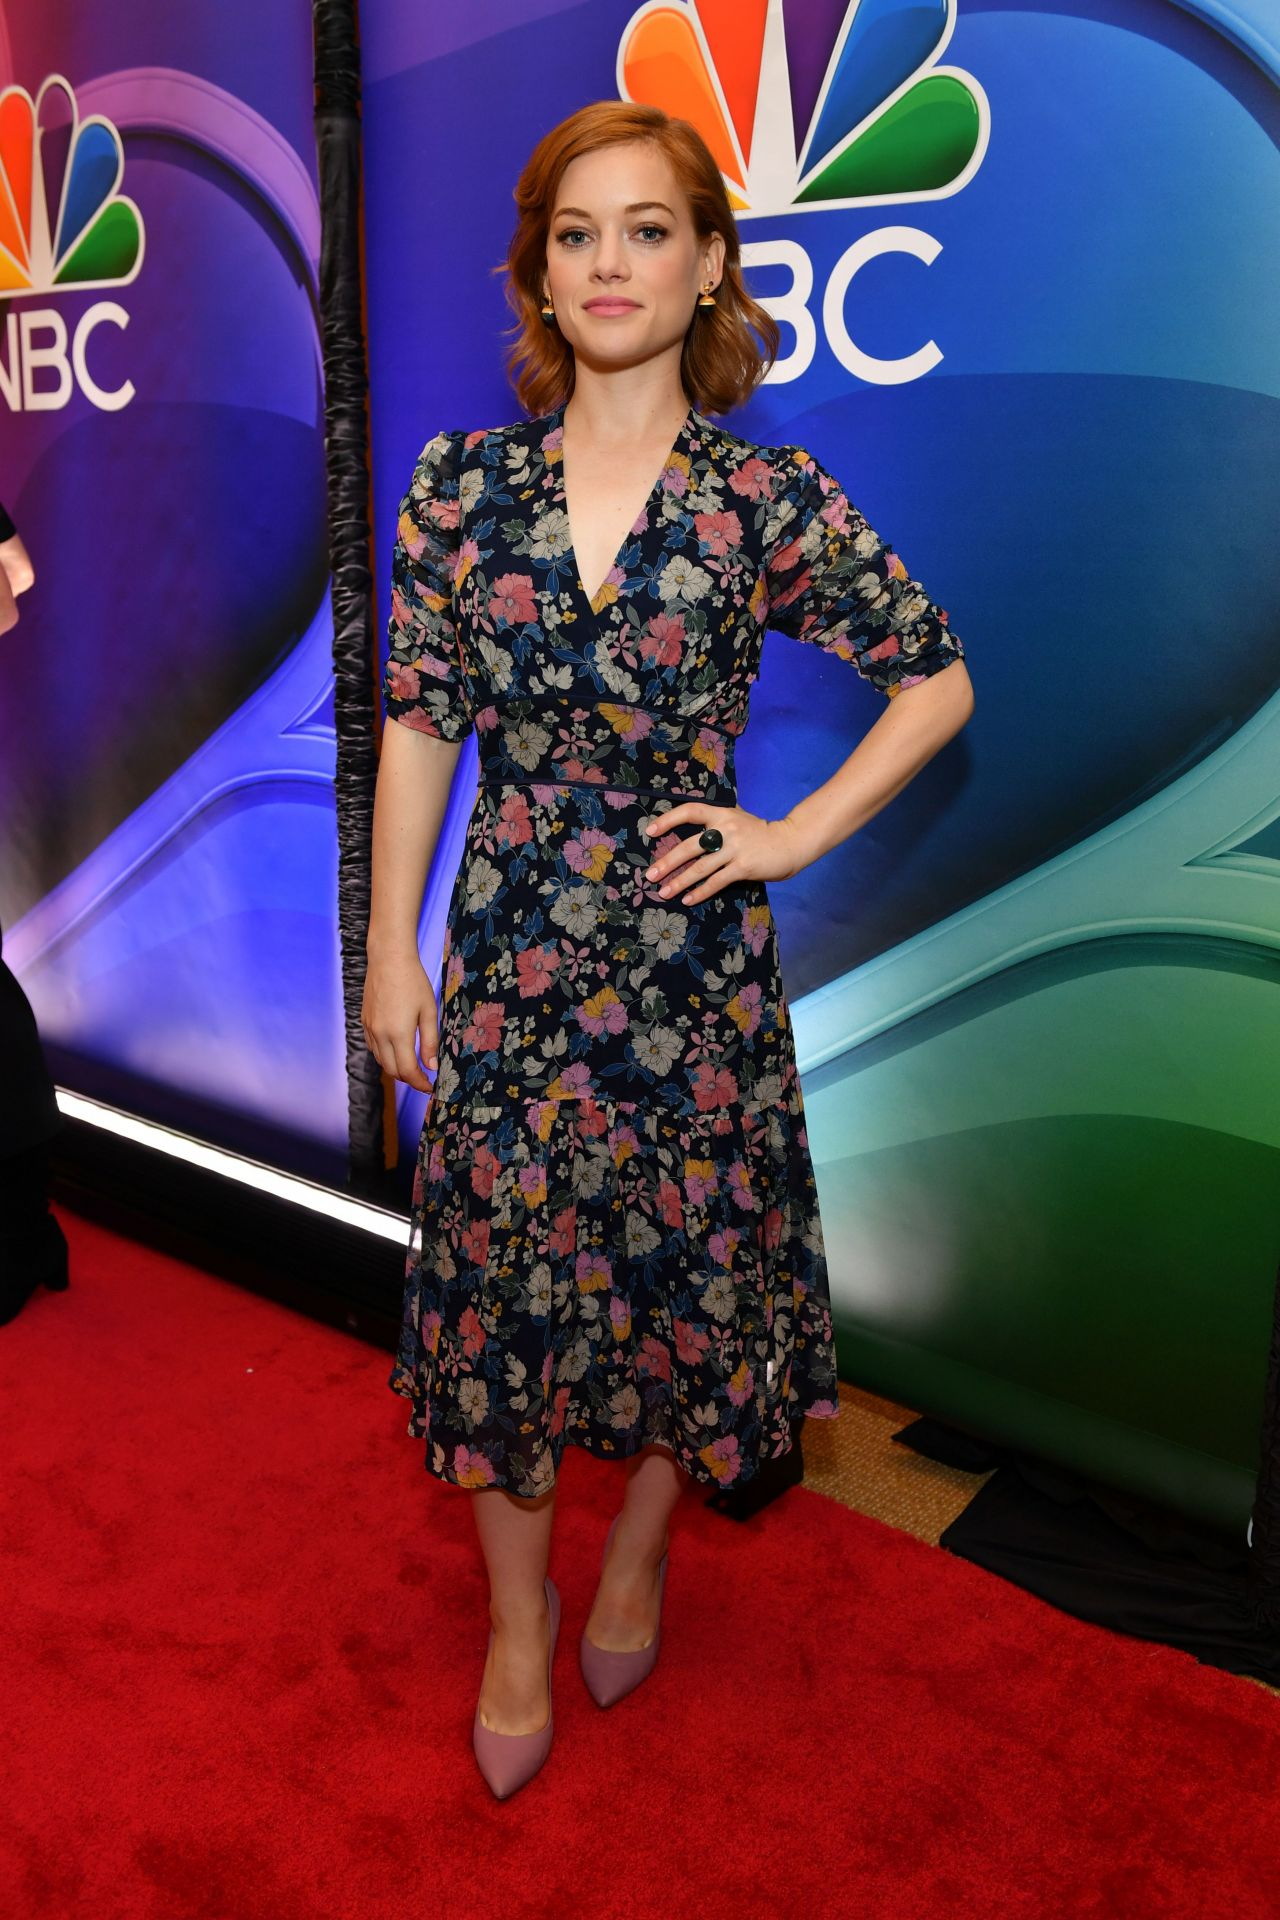 Jane Levy Nbcuniversal Upfront Presentation In Nyc 5 13 2019